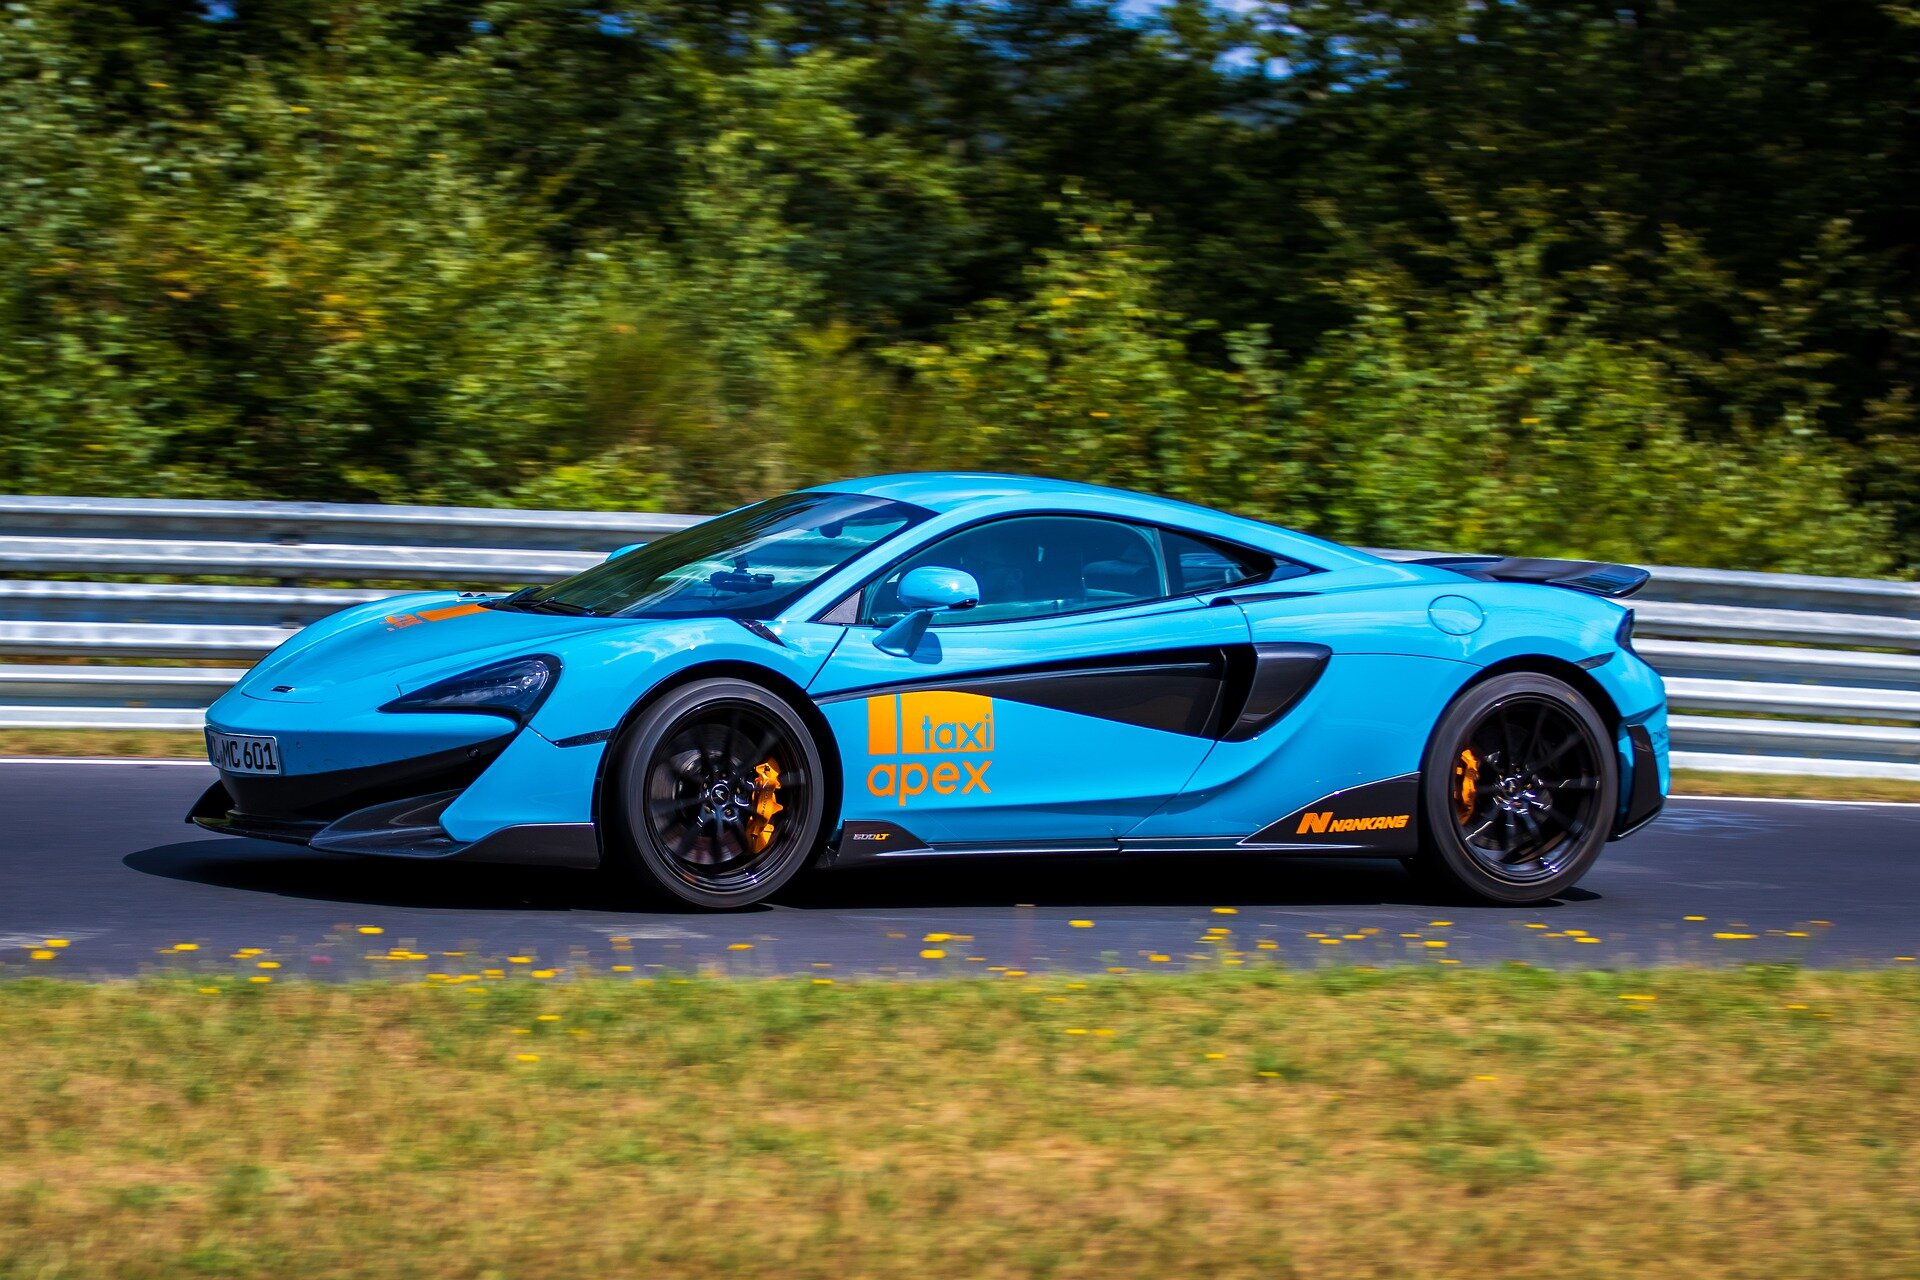 A Flushing man was charged with insurance fraud after allegedly claiming that his light blue McLaren sports car, similar to the one pictured, was stolen. Investigators claim he actually crashed it himself. Photo by Domenik2212 via Pixabay.